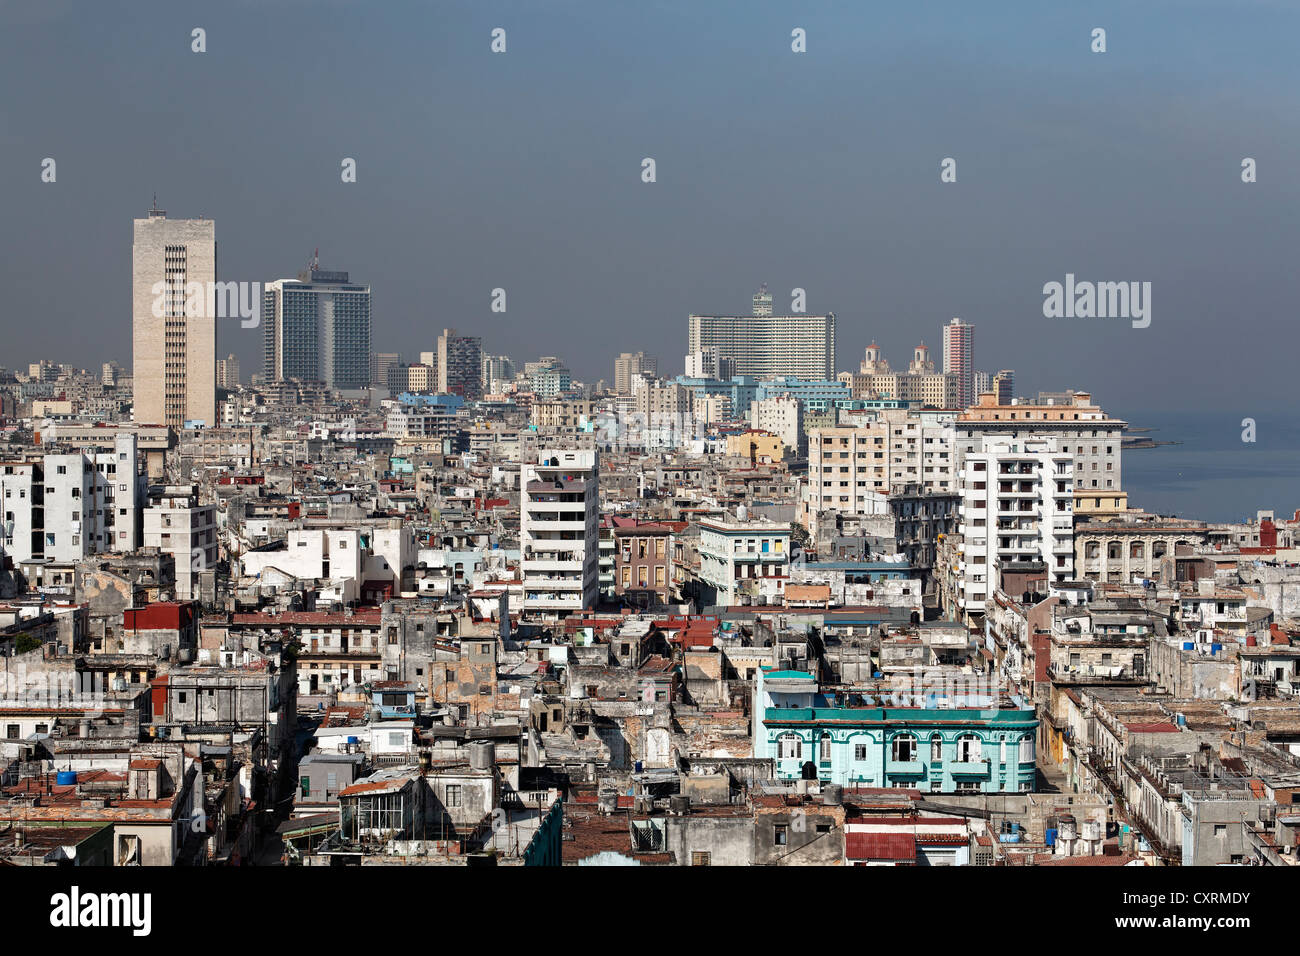 Panoramic view across the rooftops of Villa San Cristobal de La Habana, La Habana, Havana Republic of Cuba, Caribbean - Stock Image